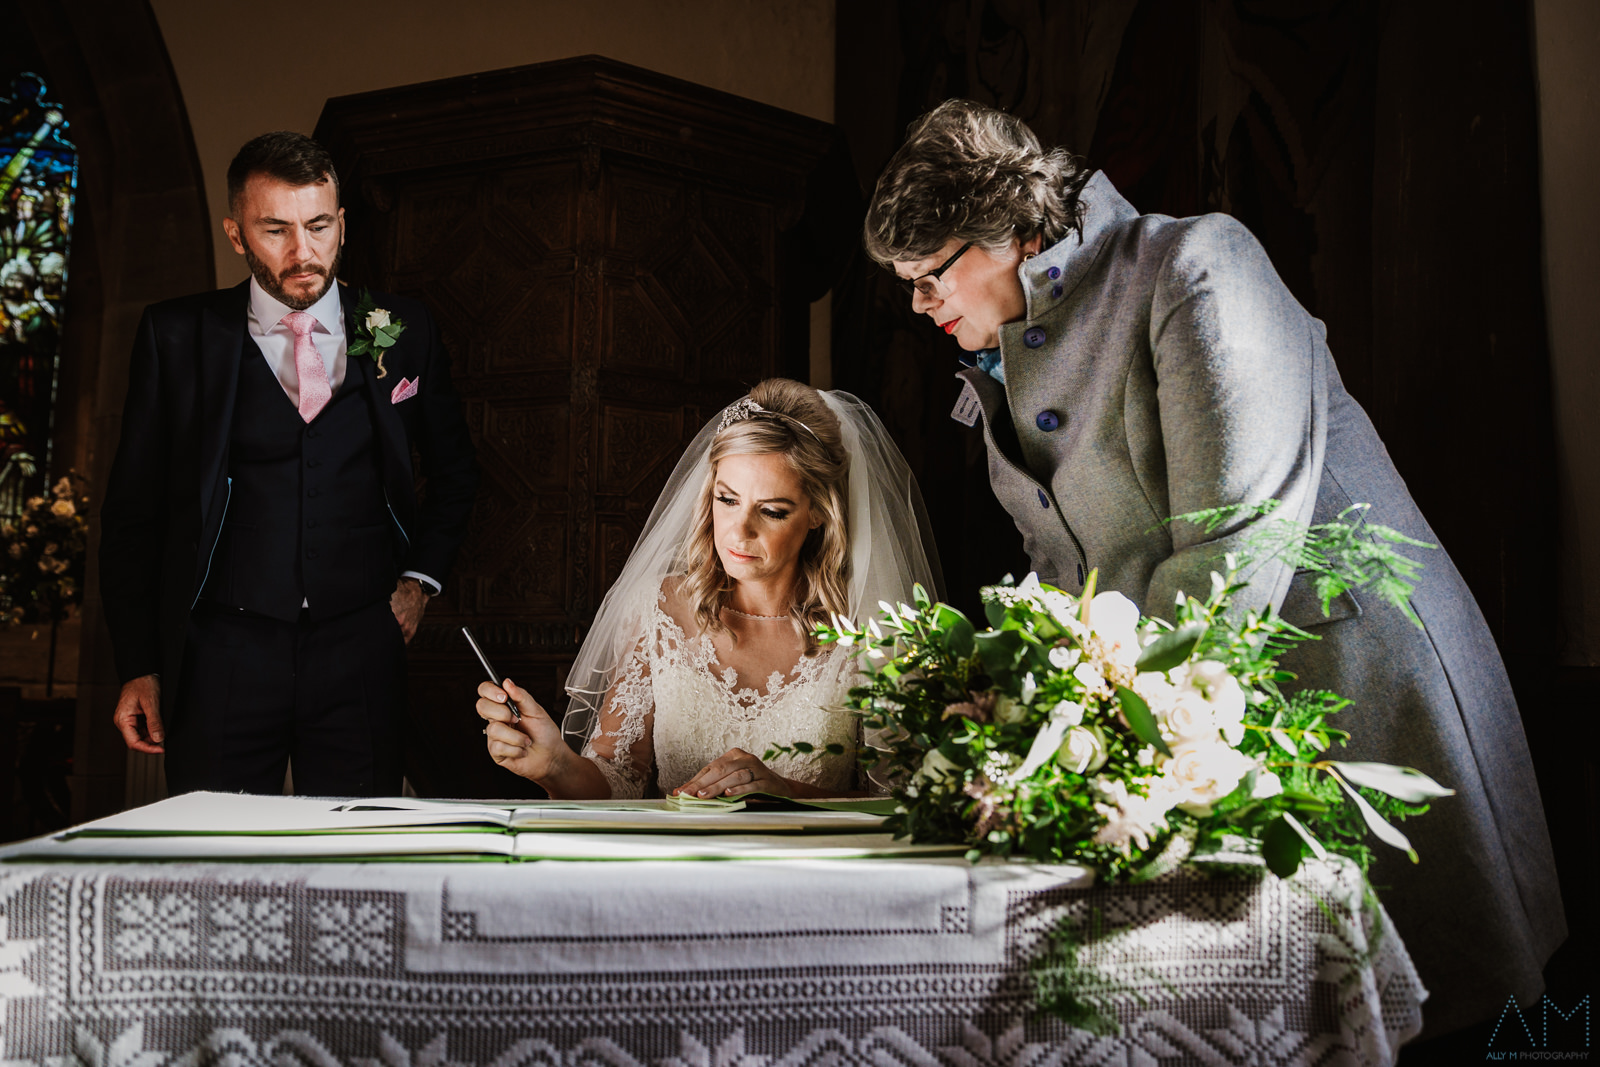 Siging the wedding certificate at the inn at whitewell